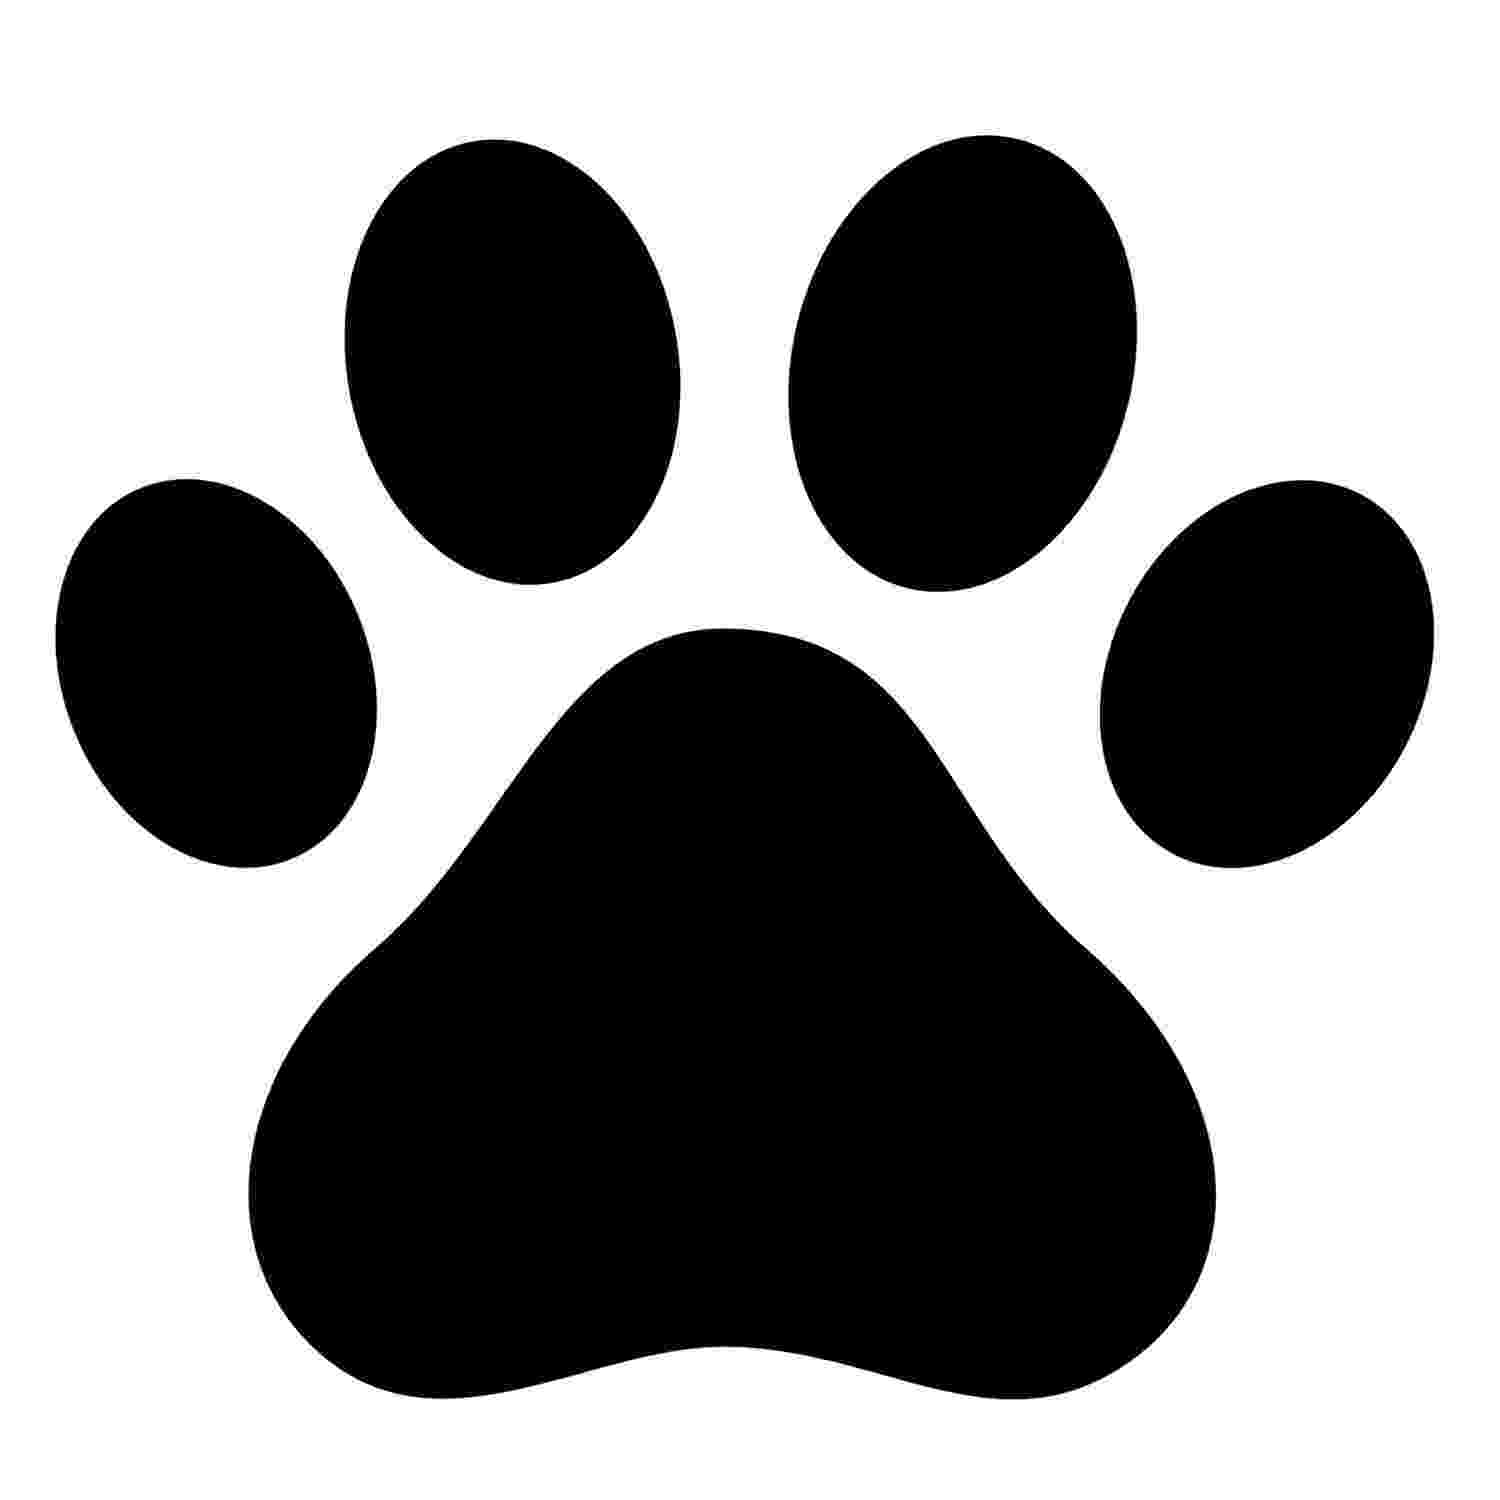 print a dog pack of 3 dog print stencils made from 4 ply mat board print a dog